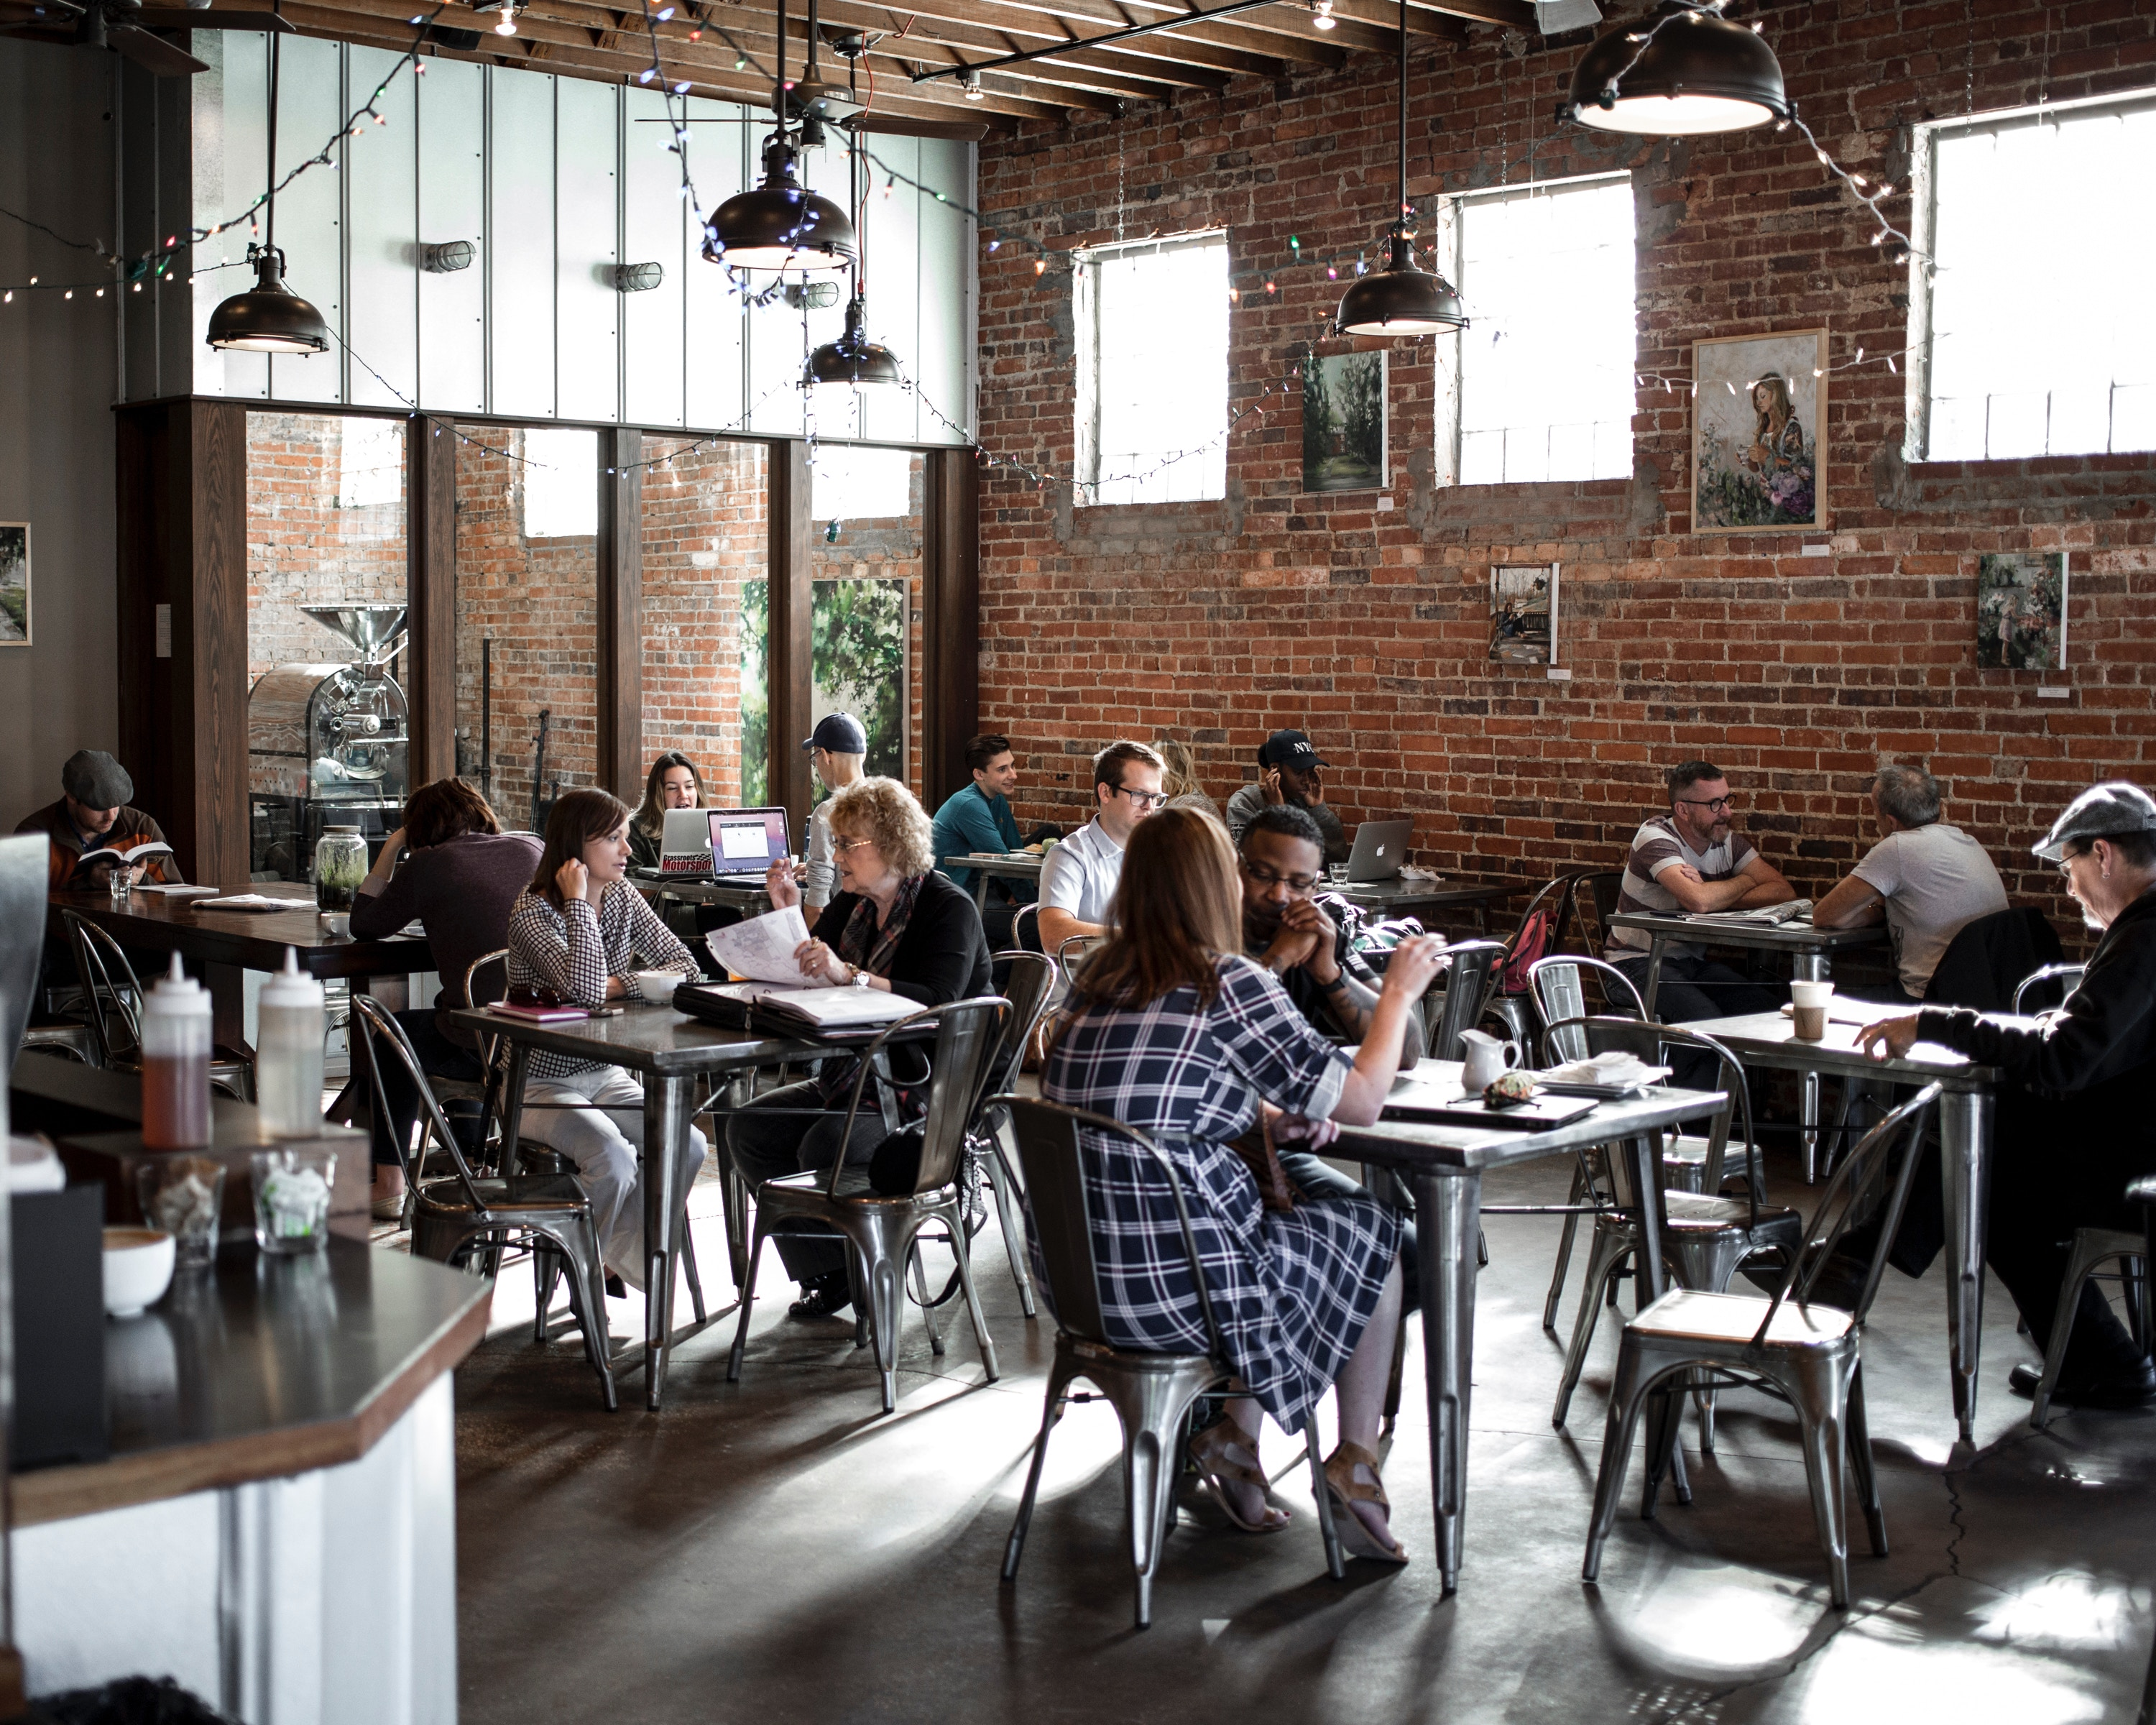 6 Ideas to Attract More Customers in Your Restaurant